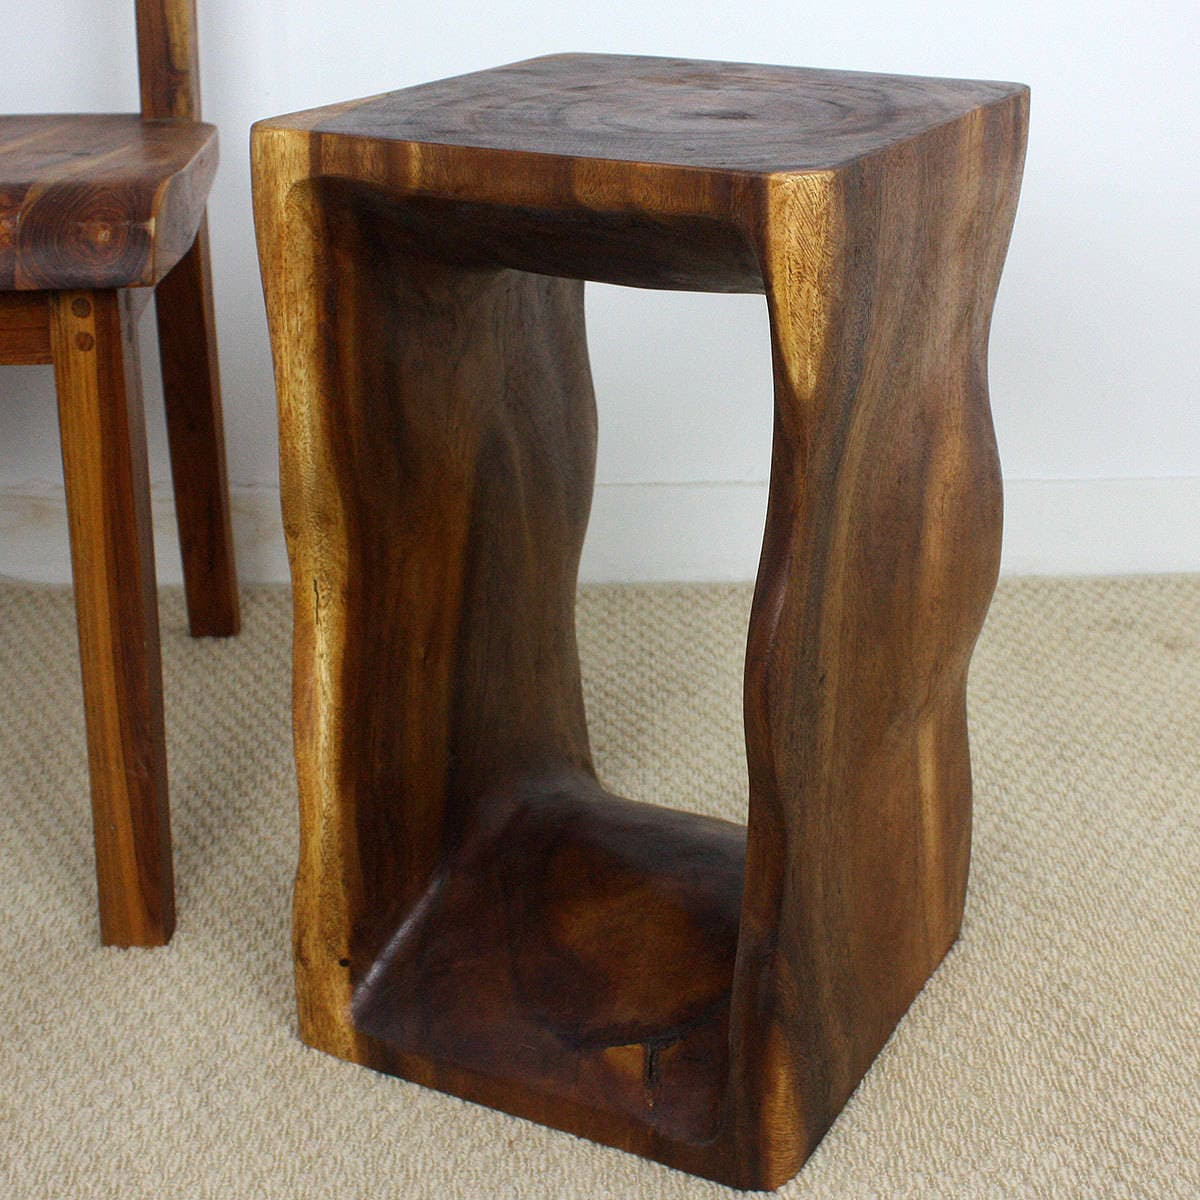 Exceptional Handmade 12 X 20 Natural Walnut Oiled U0027Monkey Podu0027 Wood End Table  (Thailand)   Free Shipping Today   Overstock.com   16562263